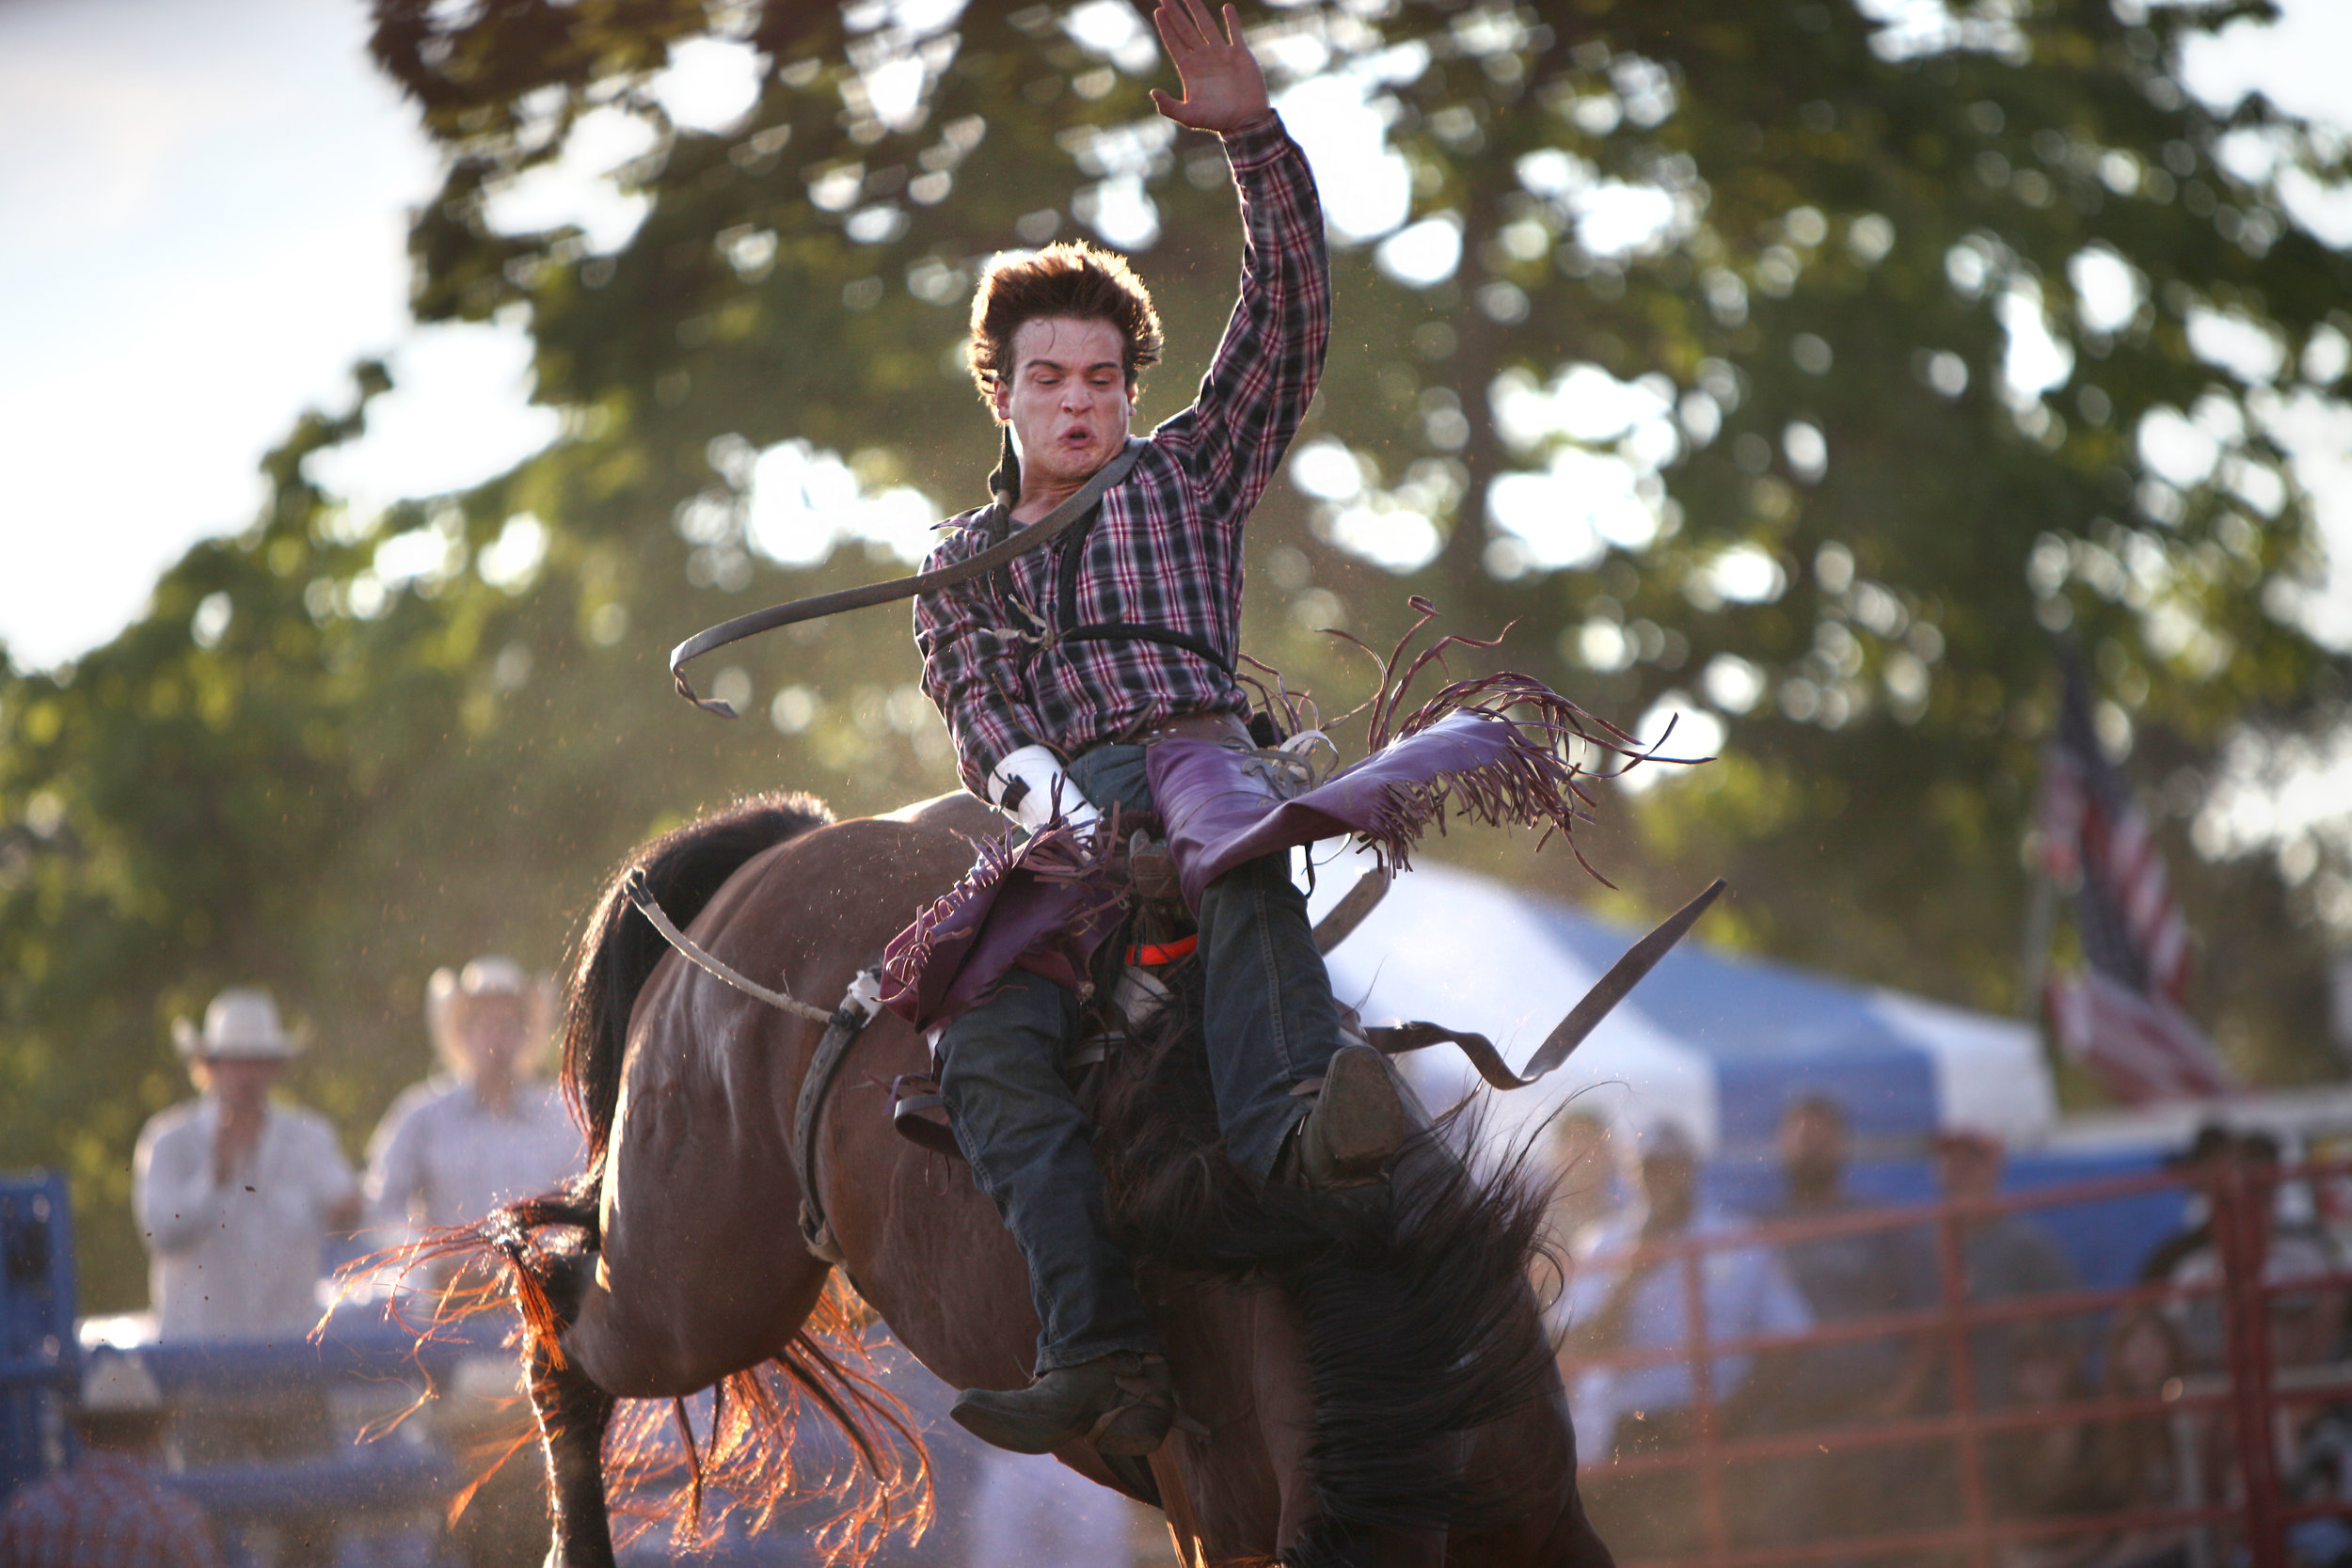 J.C. Hester, 22, from Marshall, Mo., competes in bare-back riding during Green County Fair's rodeo July 22, 2015.